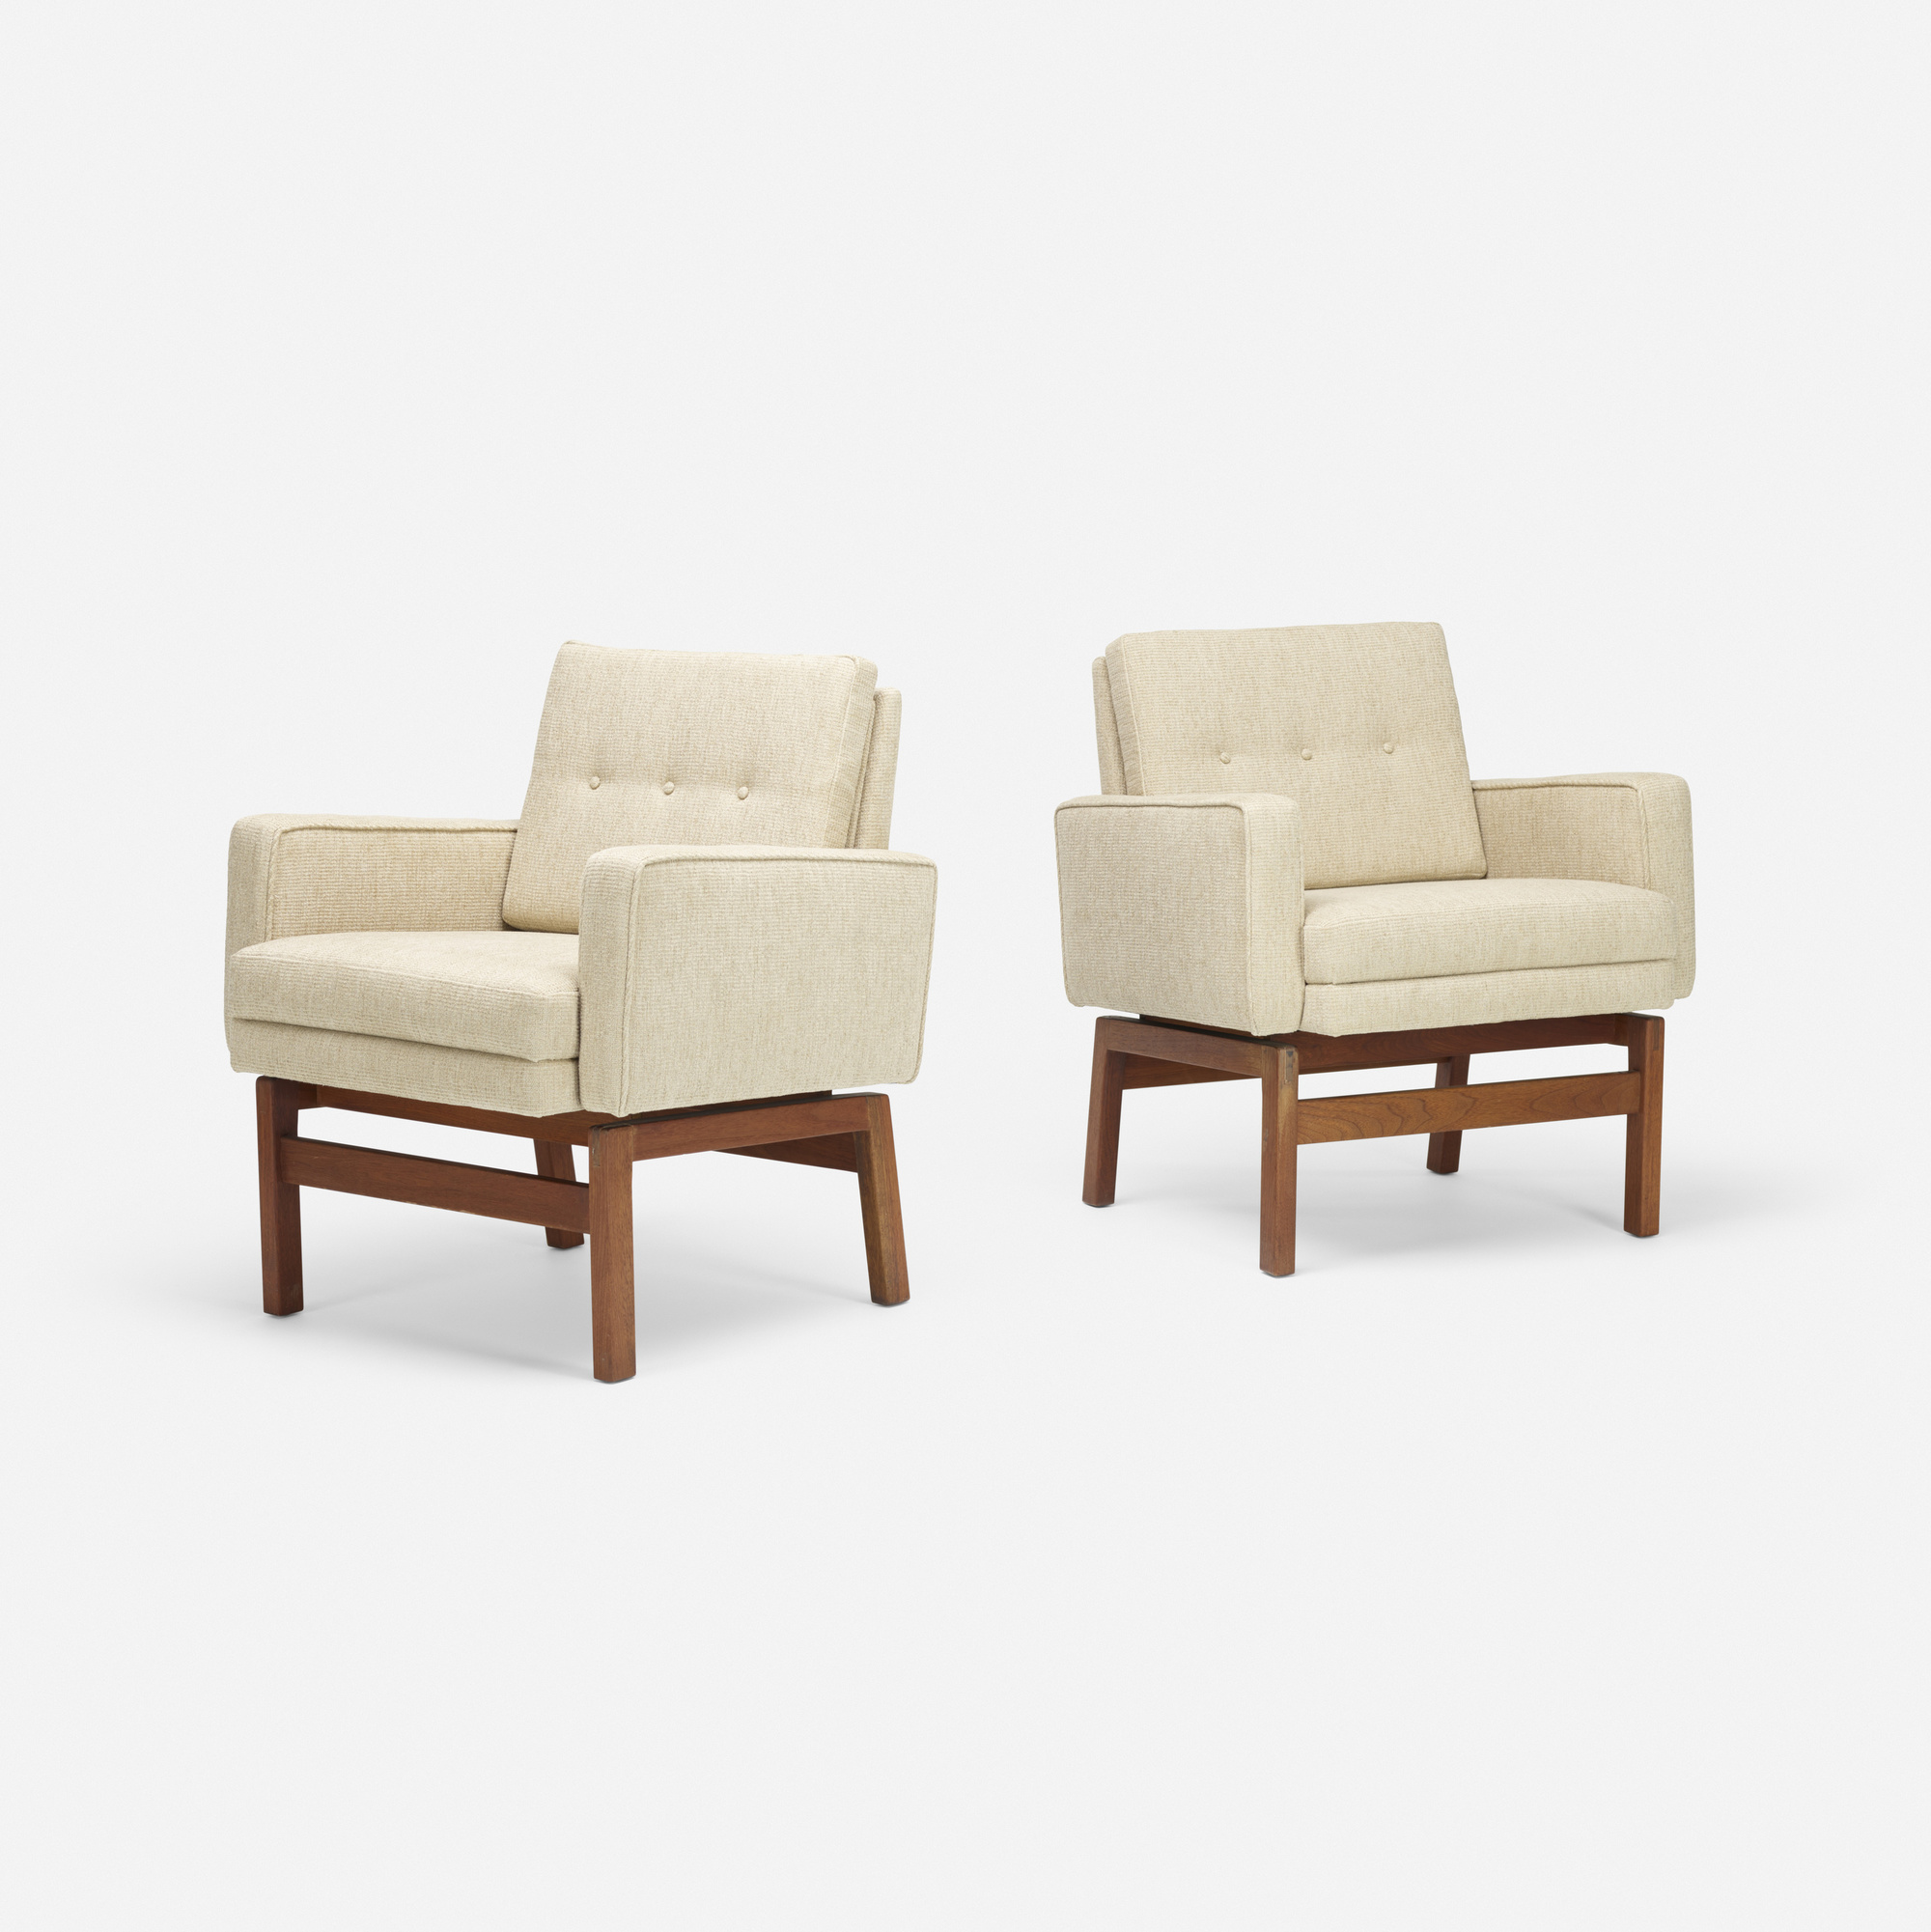 113: Jens Risom / lounge chairs, pair (1 of 3)